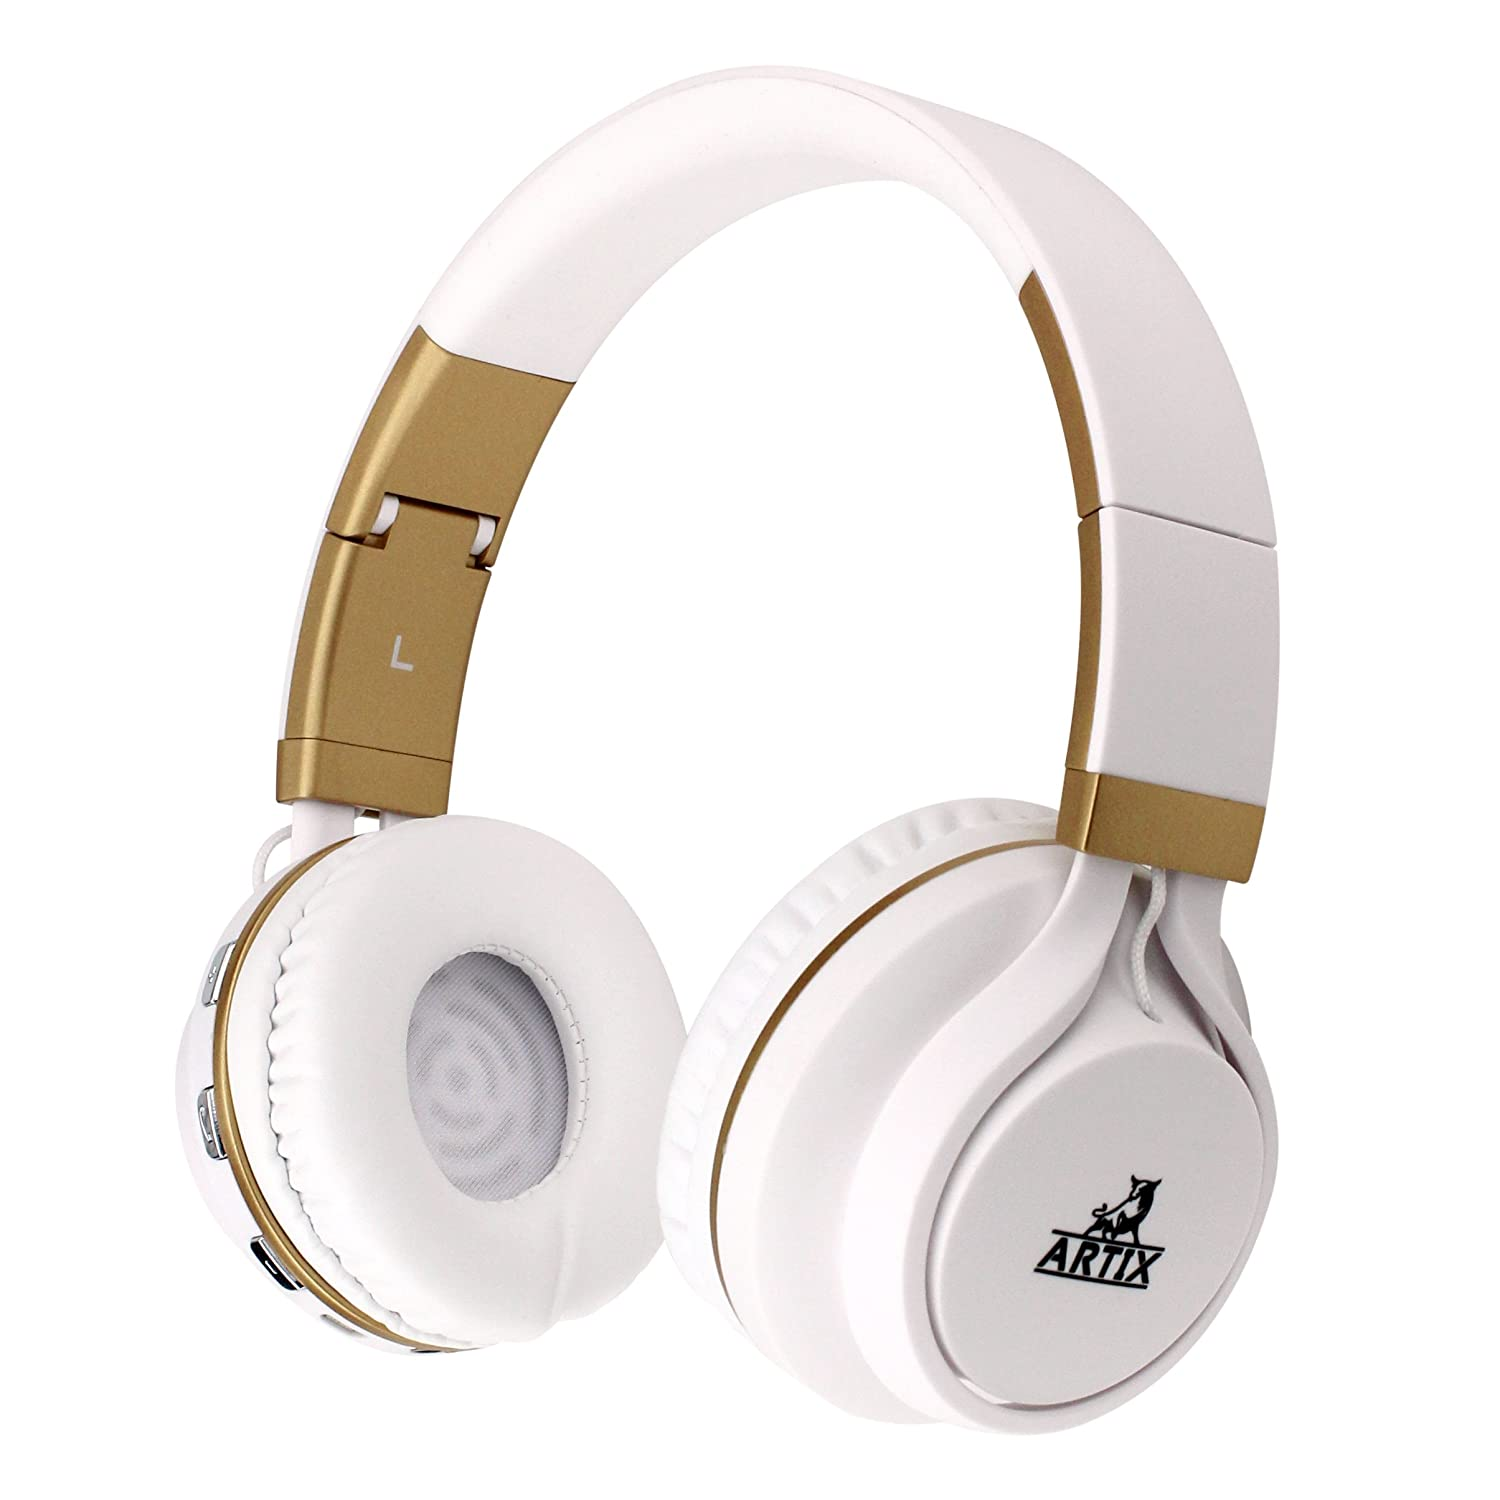 ARTIX BT5 Bluetooth Headphones On-Ear Wireless Earphones, Lightweight, Foldable, Adjustable Headset w/Built in Microphone, 3.5mm Cable for Wired Use/Work, Travel, Sport, Kids Teen Adult White/Gold